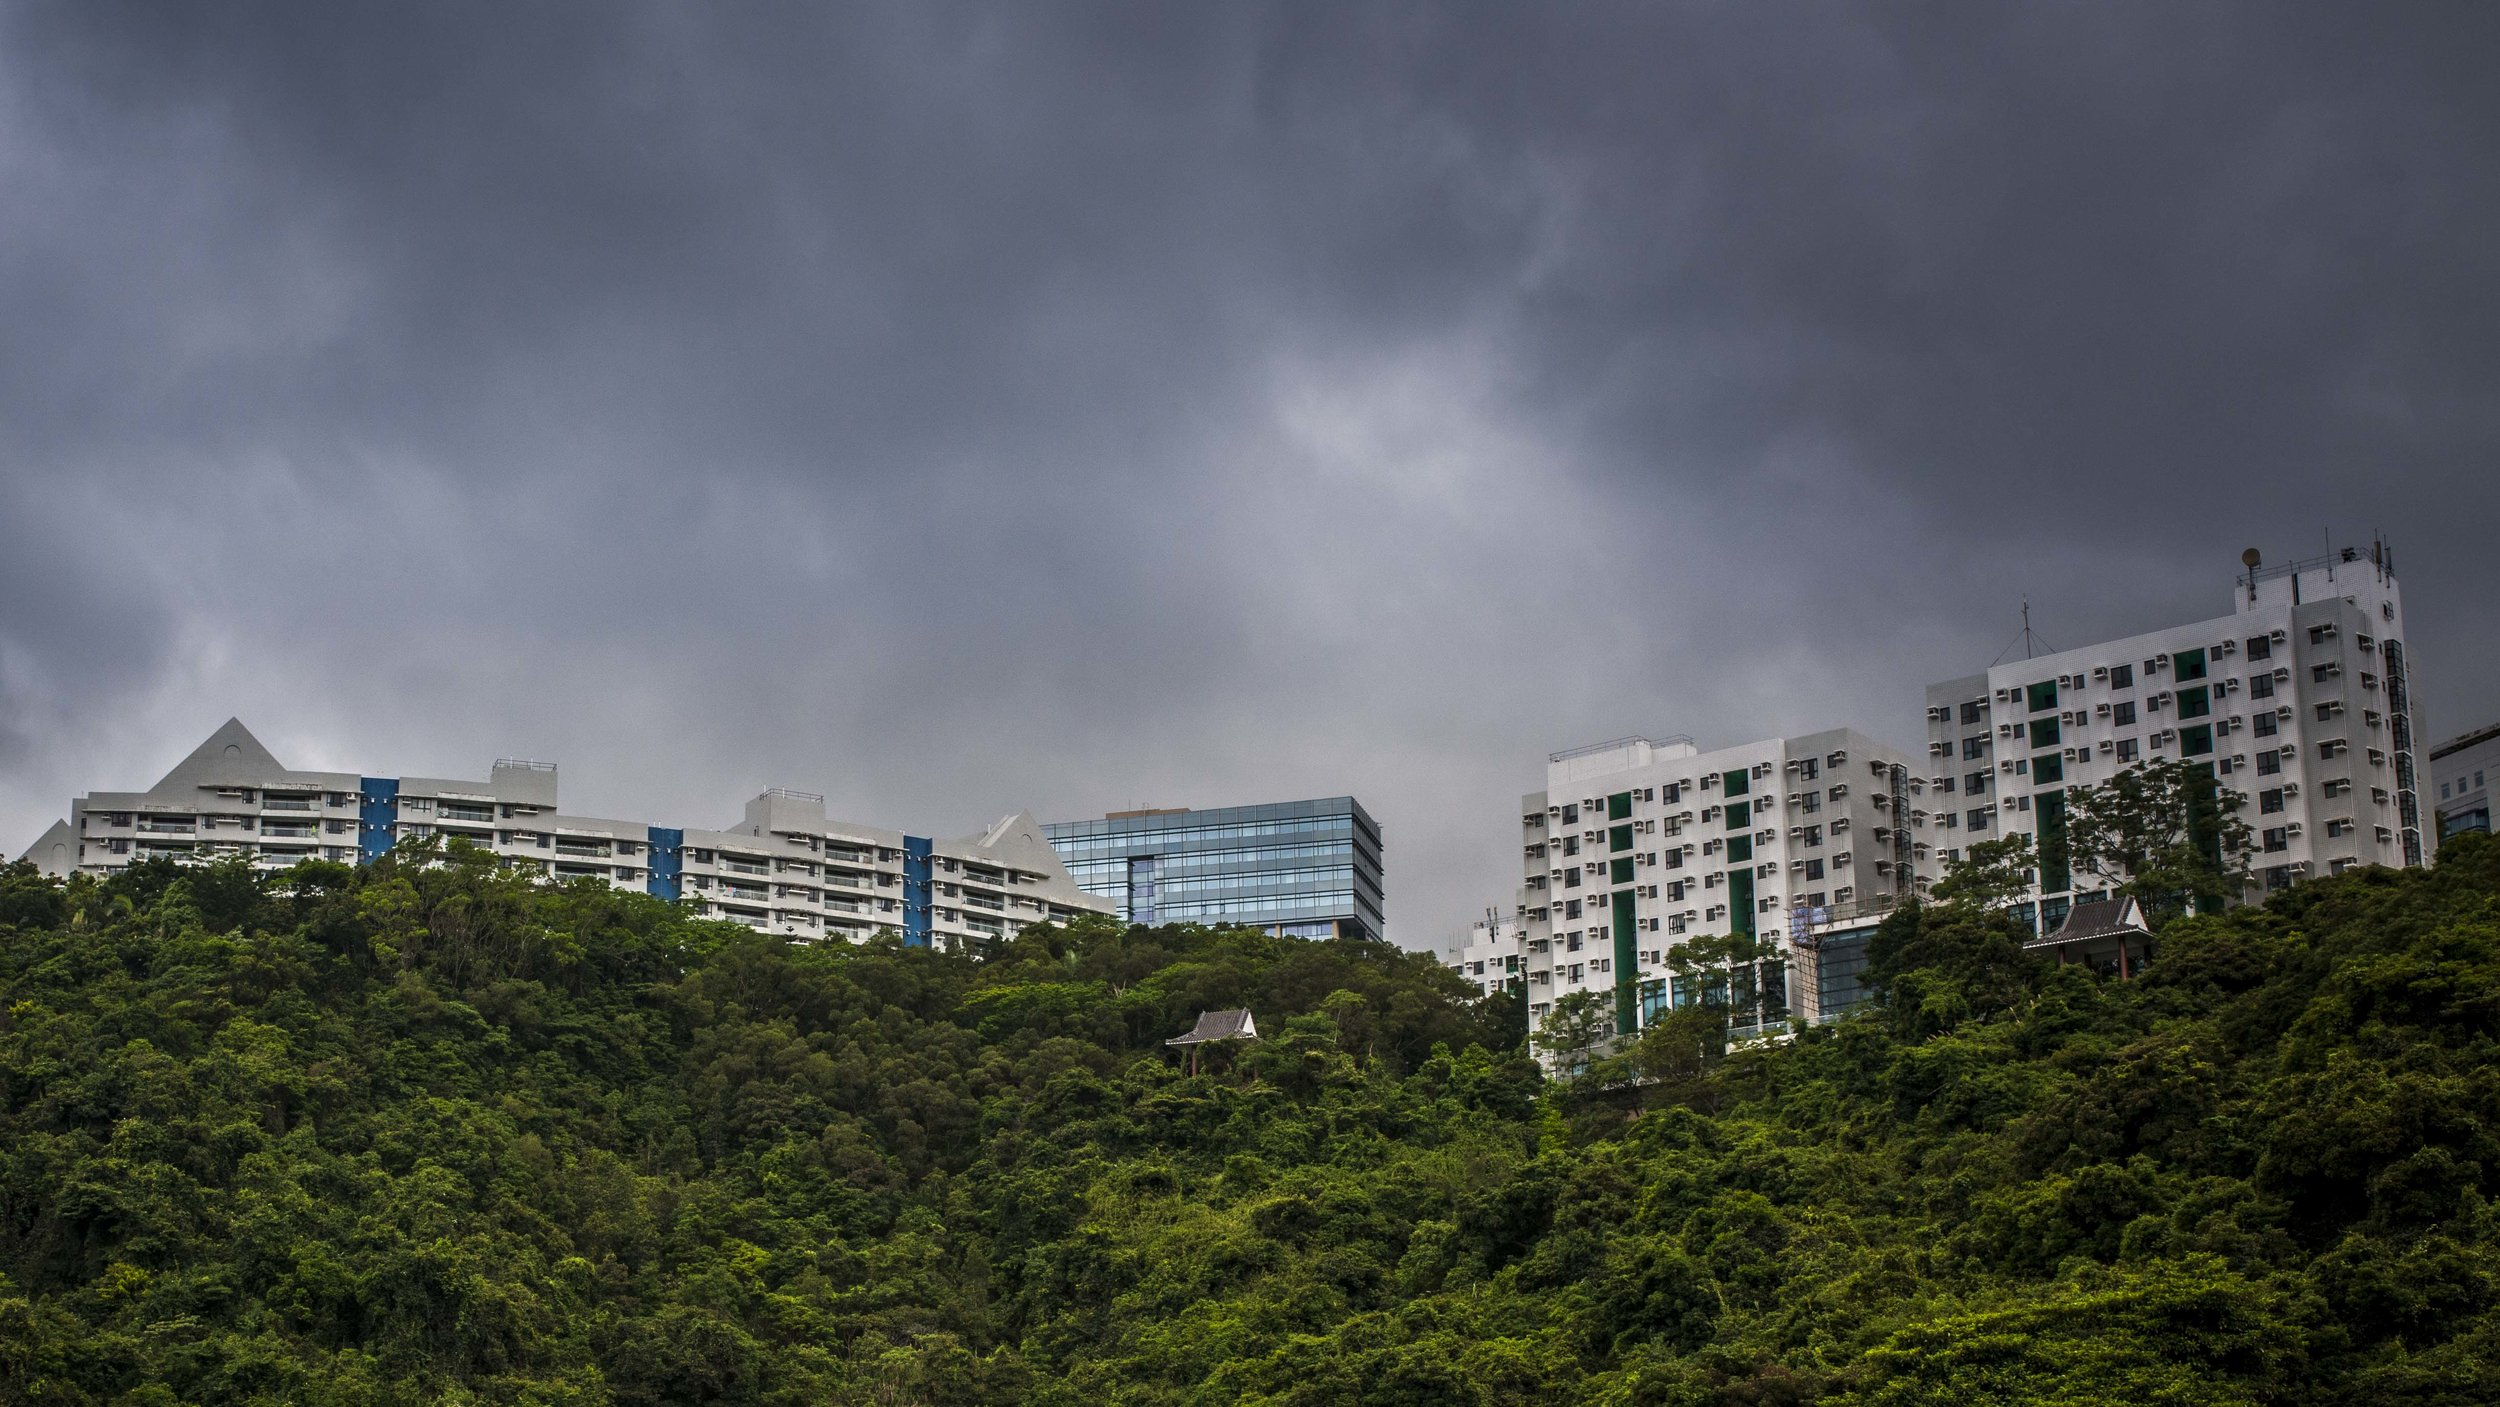 Accommodation for professors in HKUST